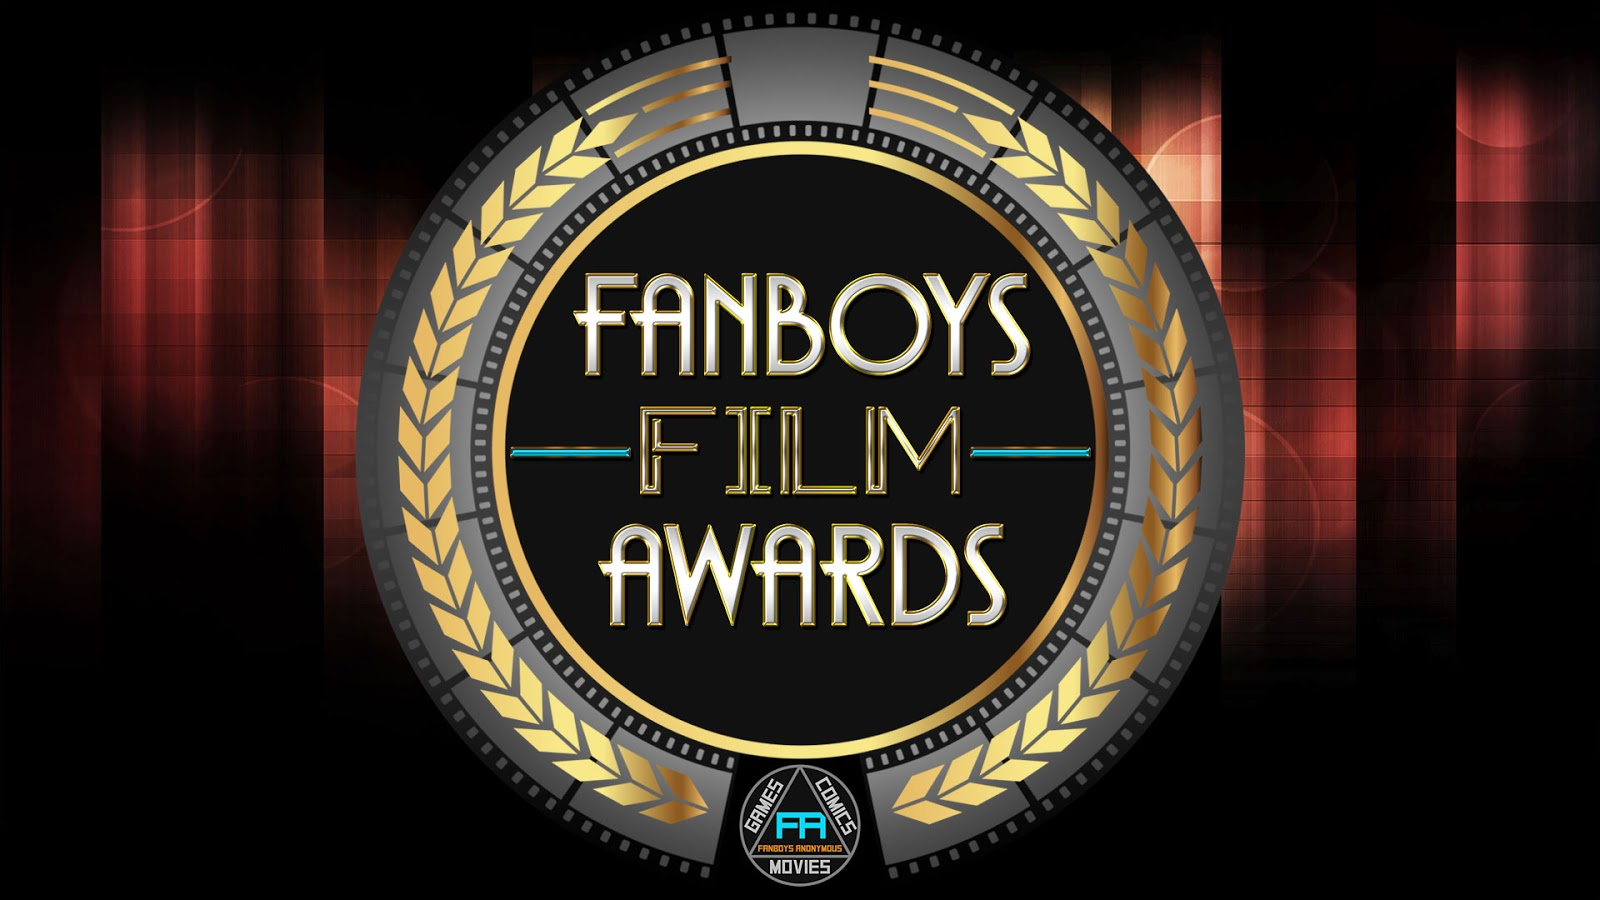 Fanboys Film Awards 2018 best comic book movies this year